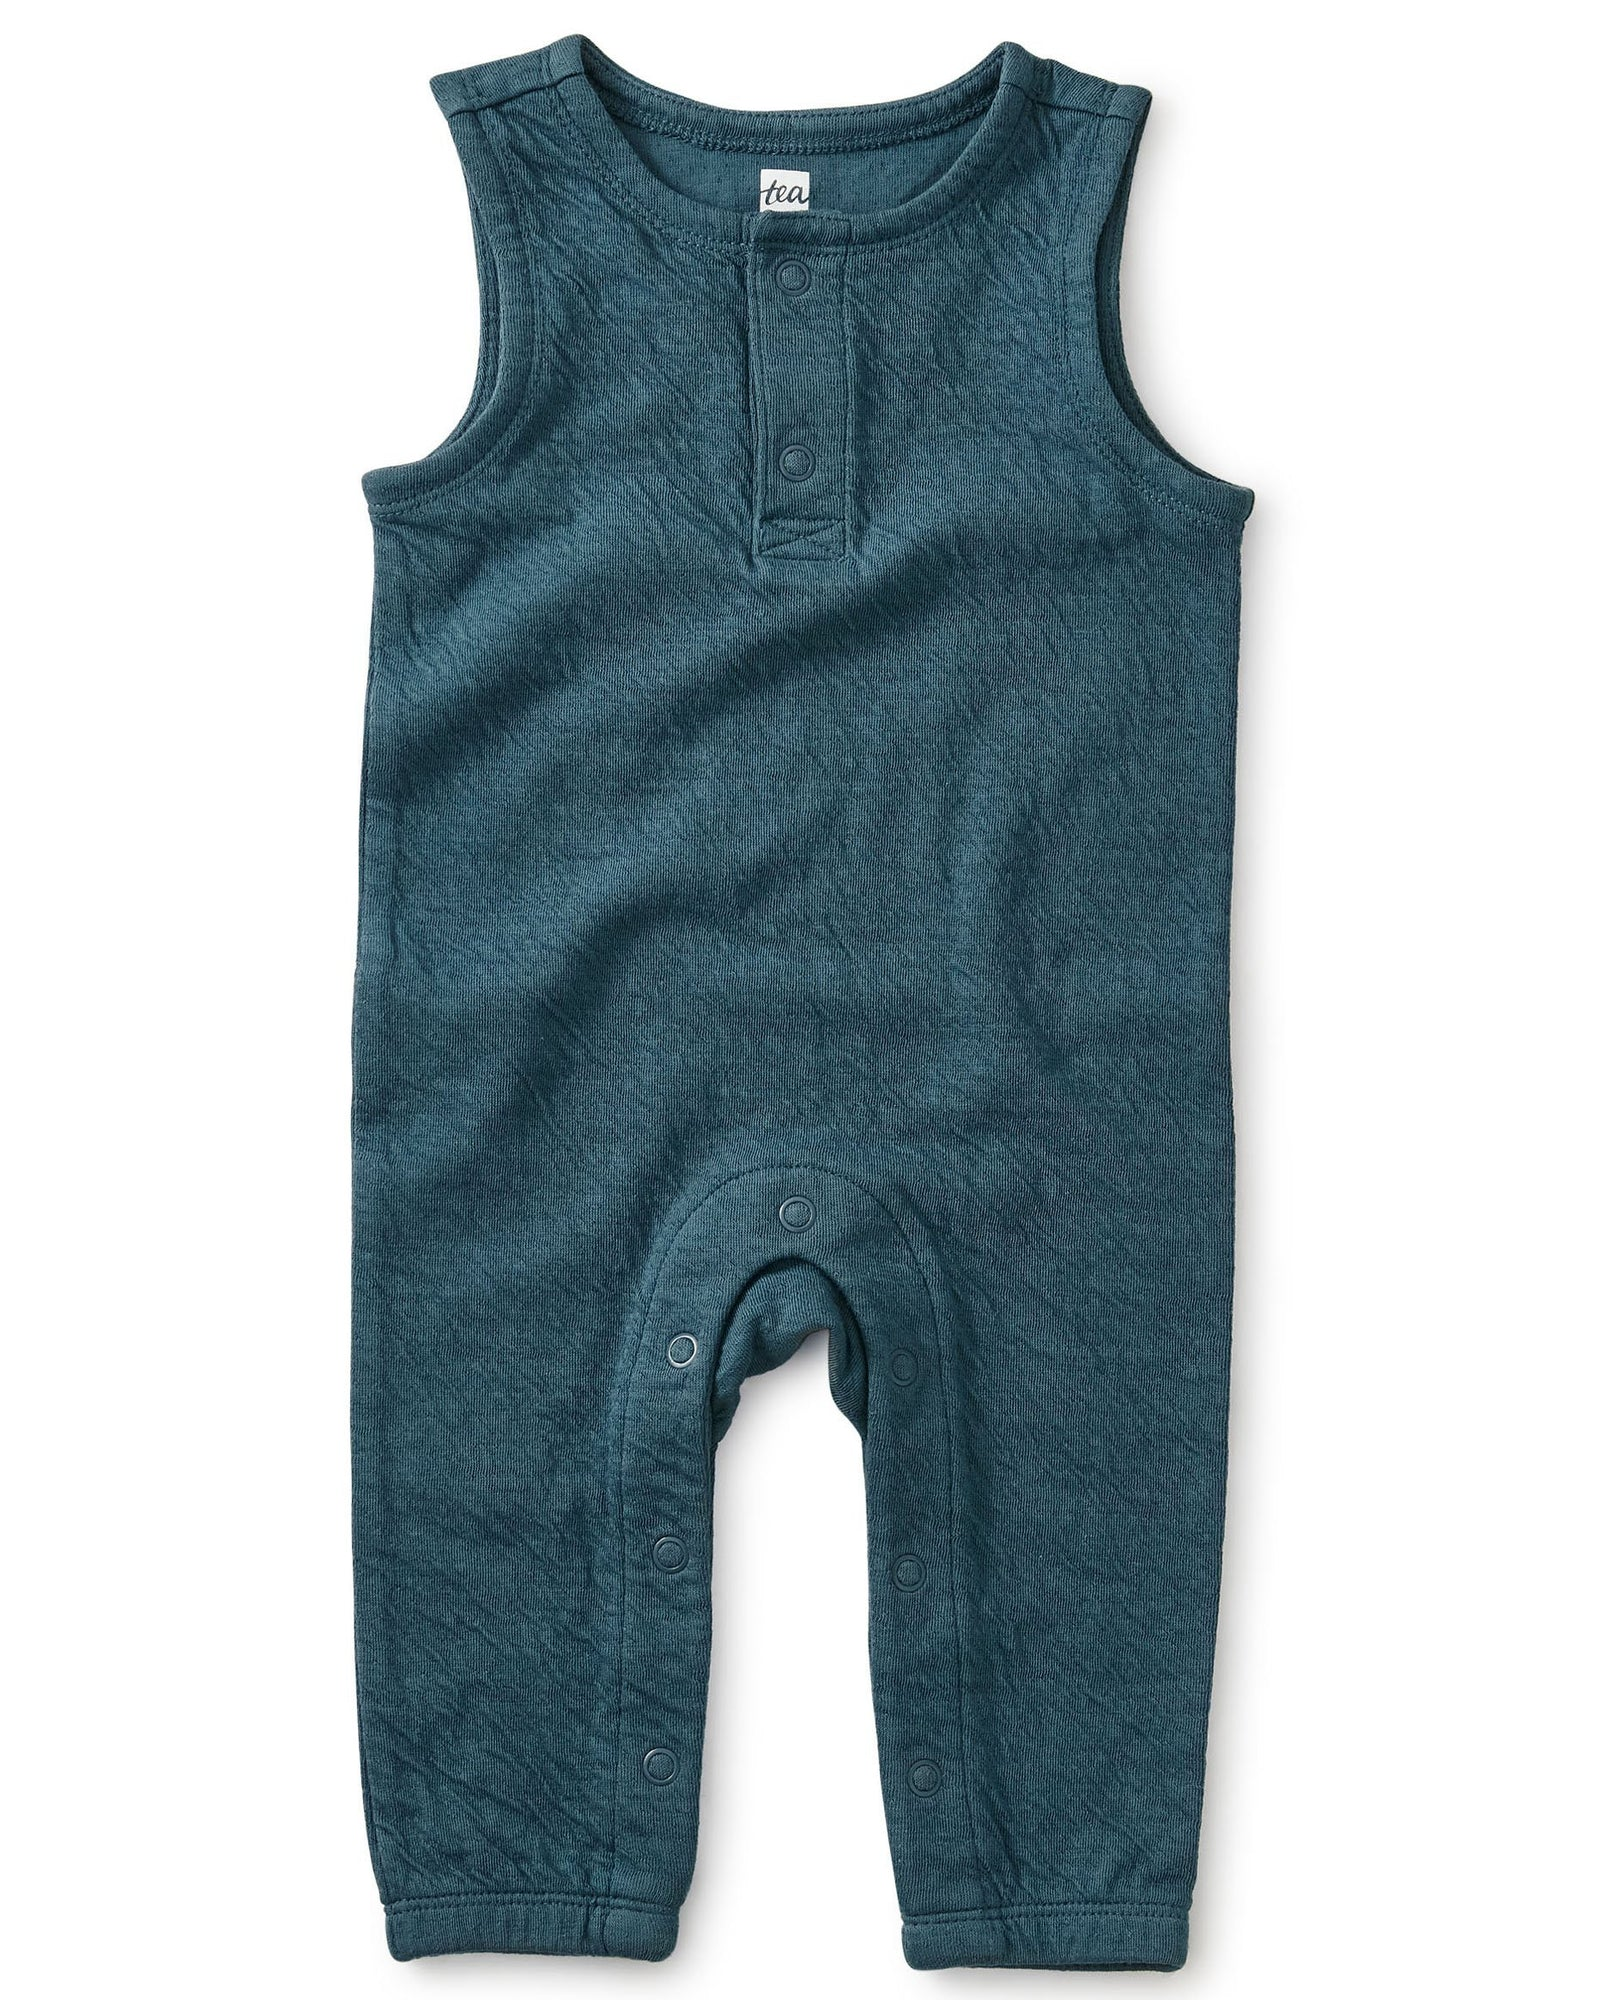 Little tea collection layette a crinkle in time teal romper